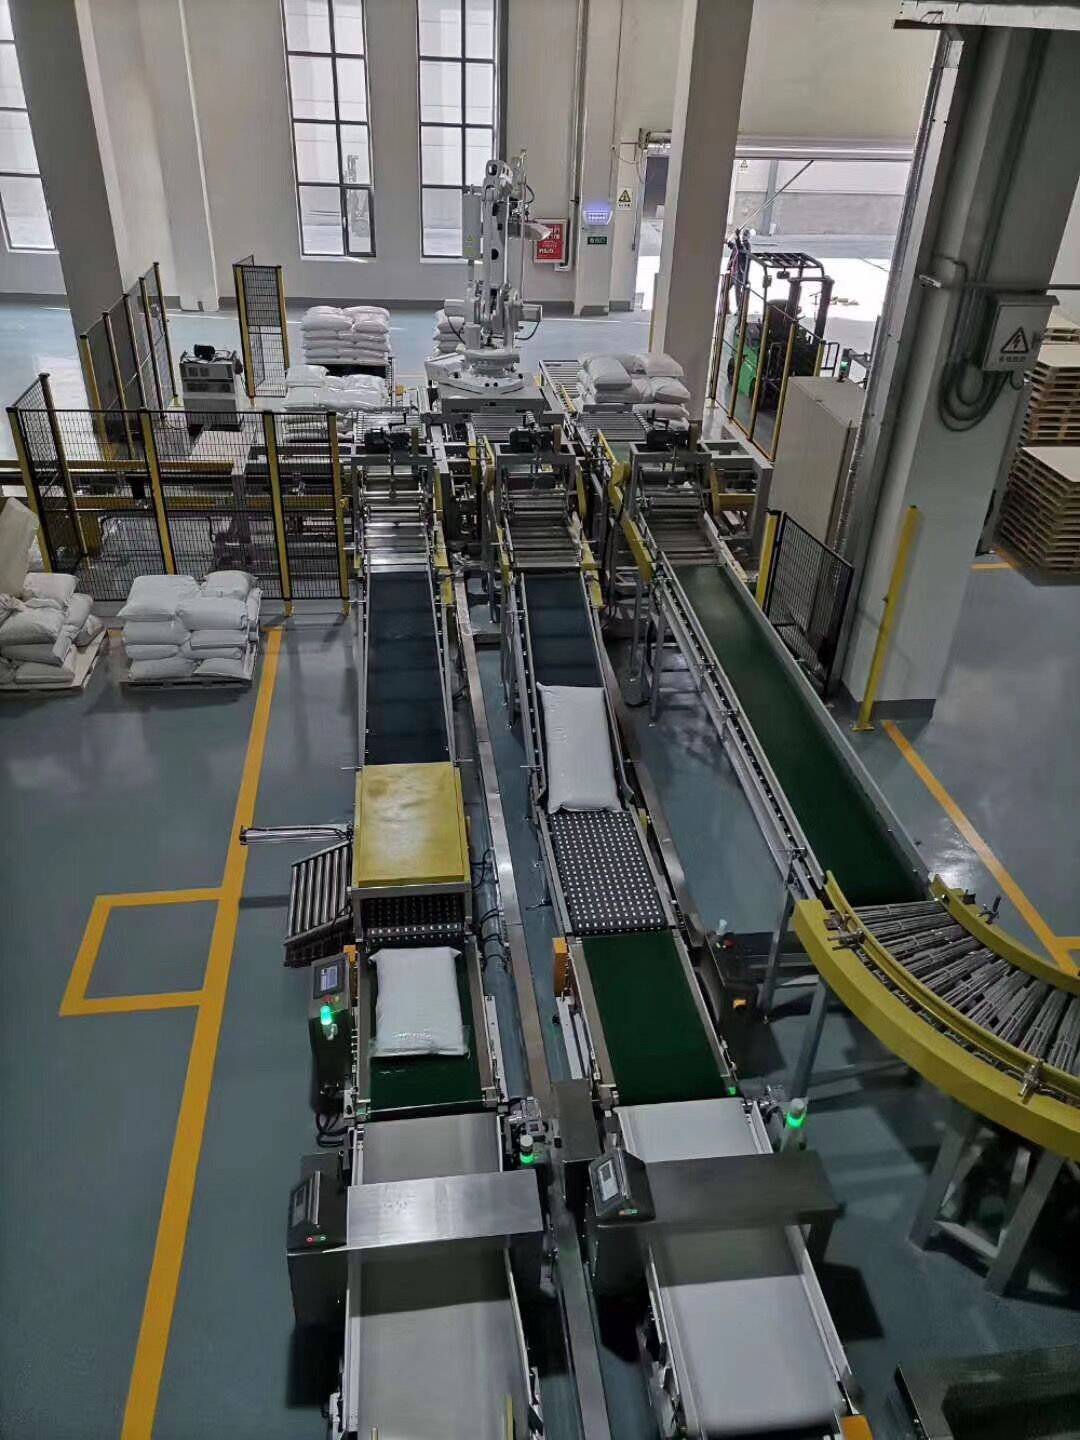 Fully Automatic Packing Palletizing Line, Containerised Bagging System, Mobile Bagging Unit, Mobile Containserized Bagging Unit, Fully Automatic Packing System, Wuxi HY Machinery Co., Ltd.